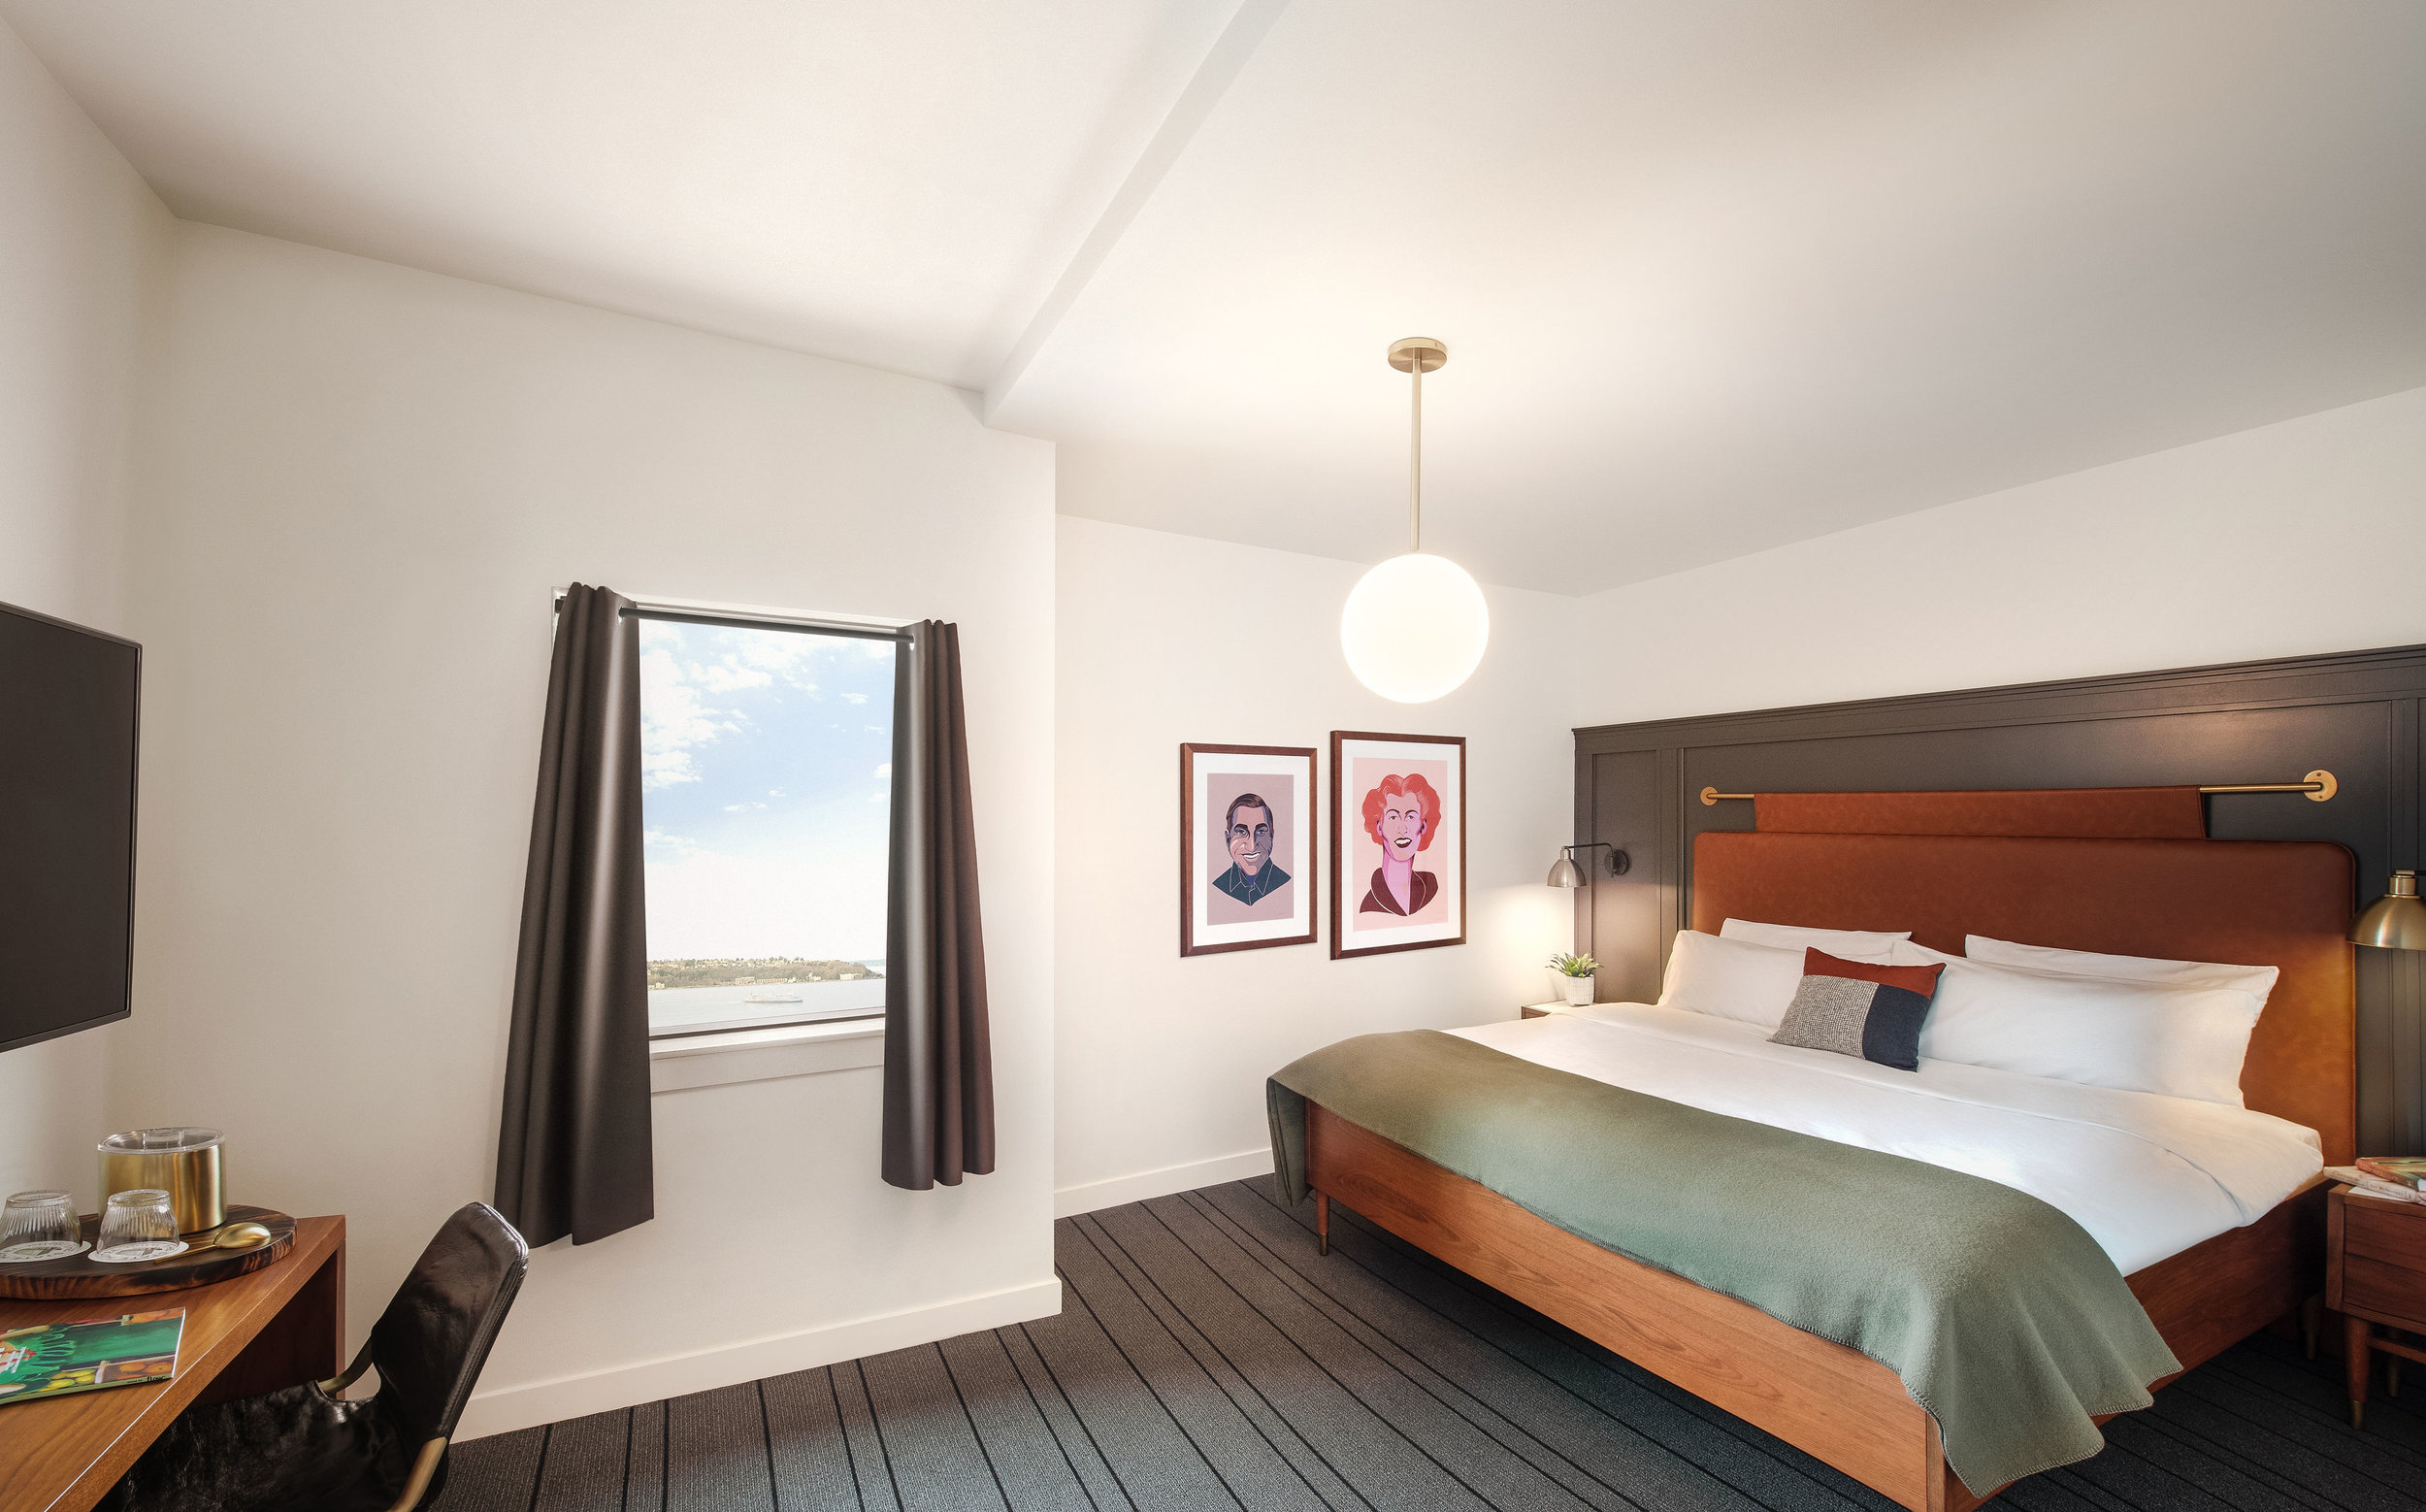 Guestroom  (photo courtesy of The State Hotel)